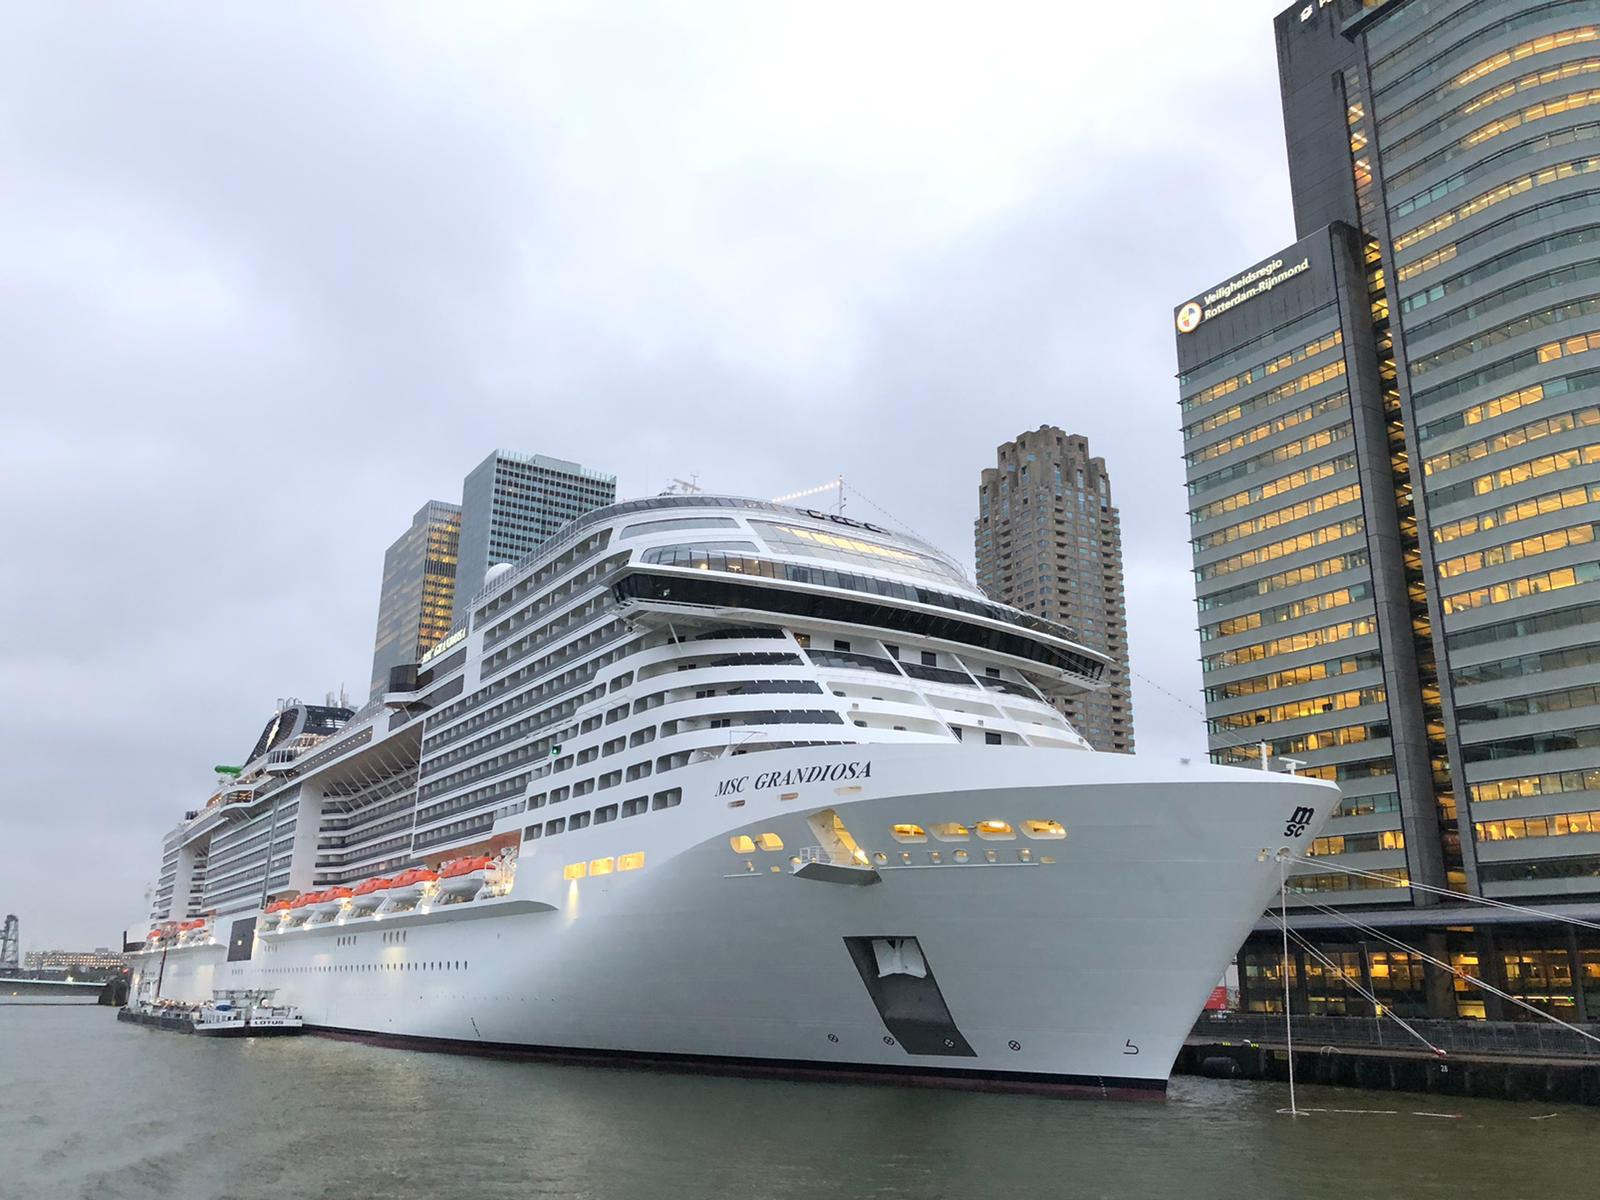 MSC Grandiosa: The Name Says It All | Porthole Cruise Magazine